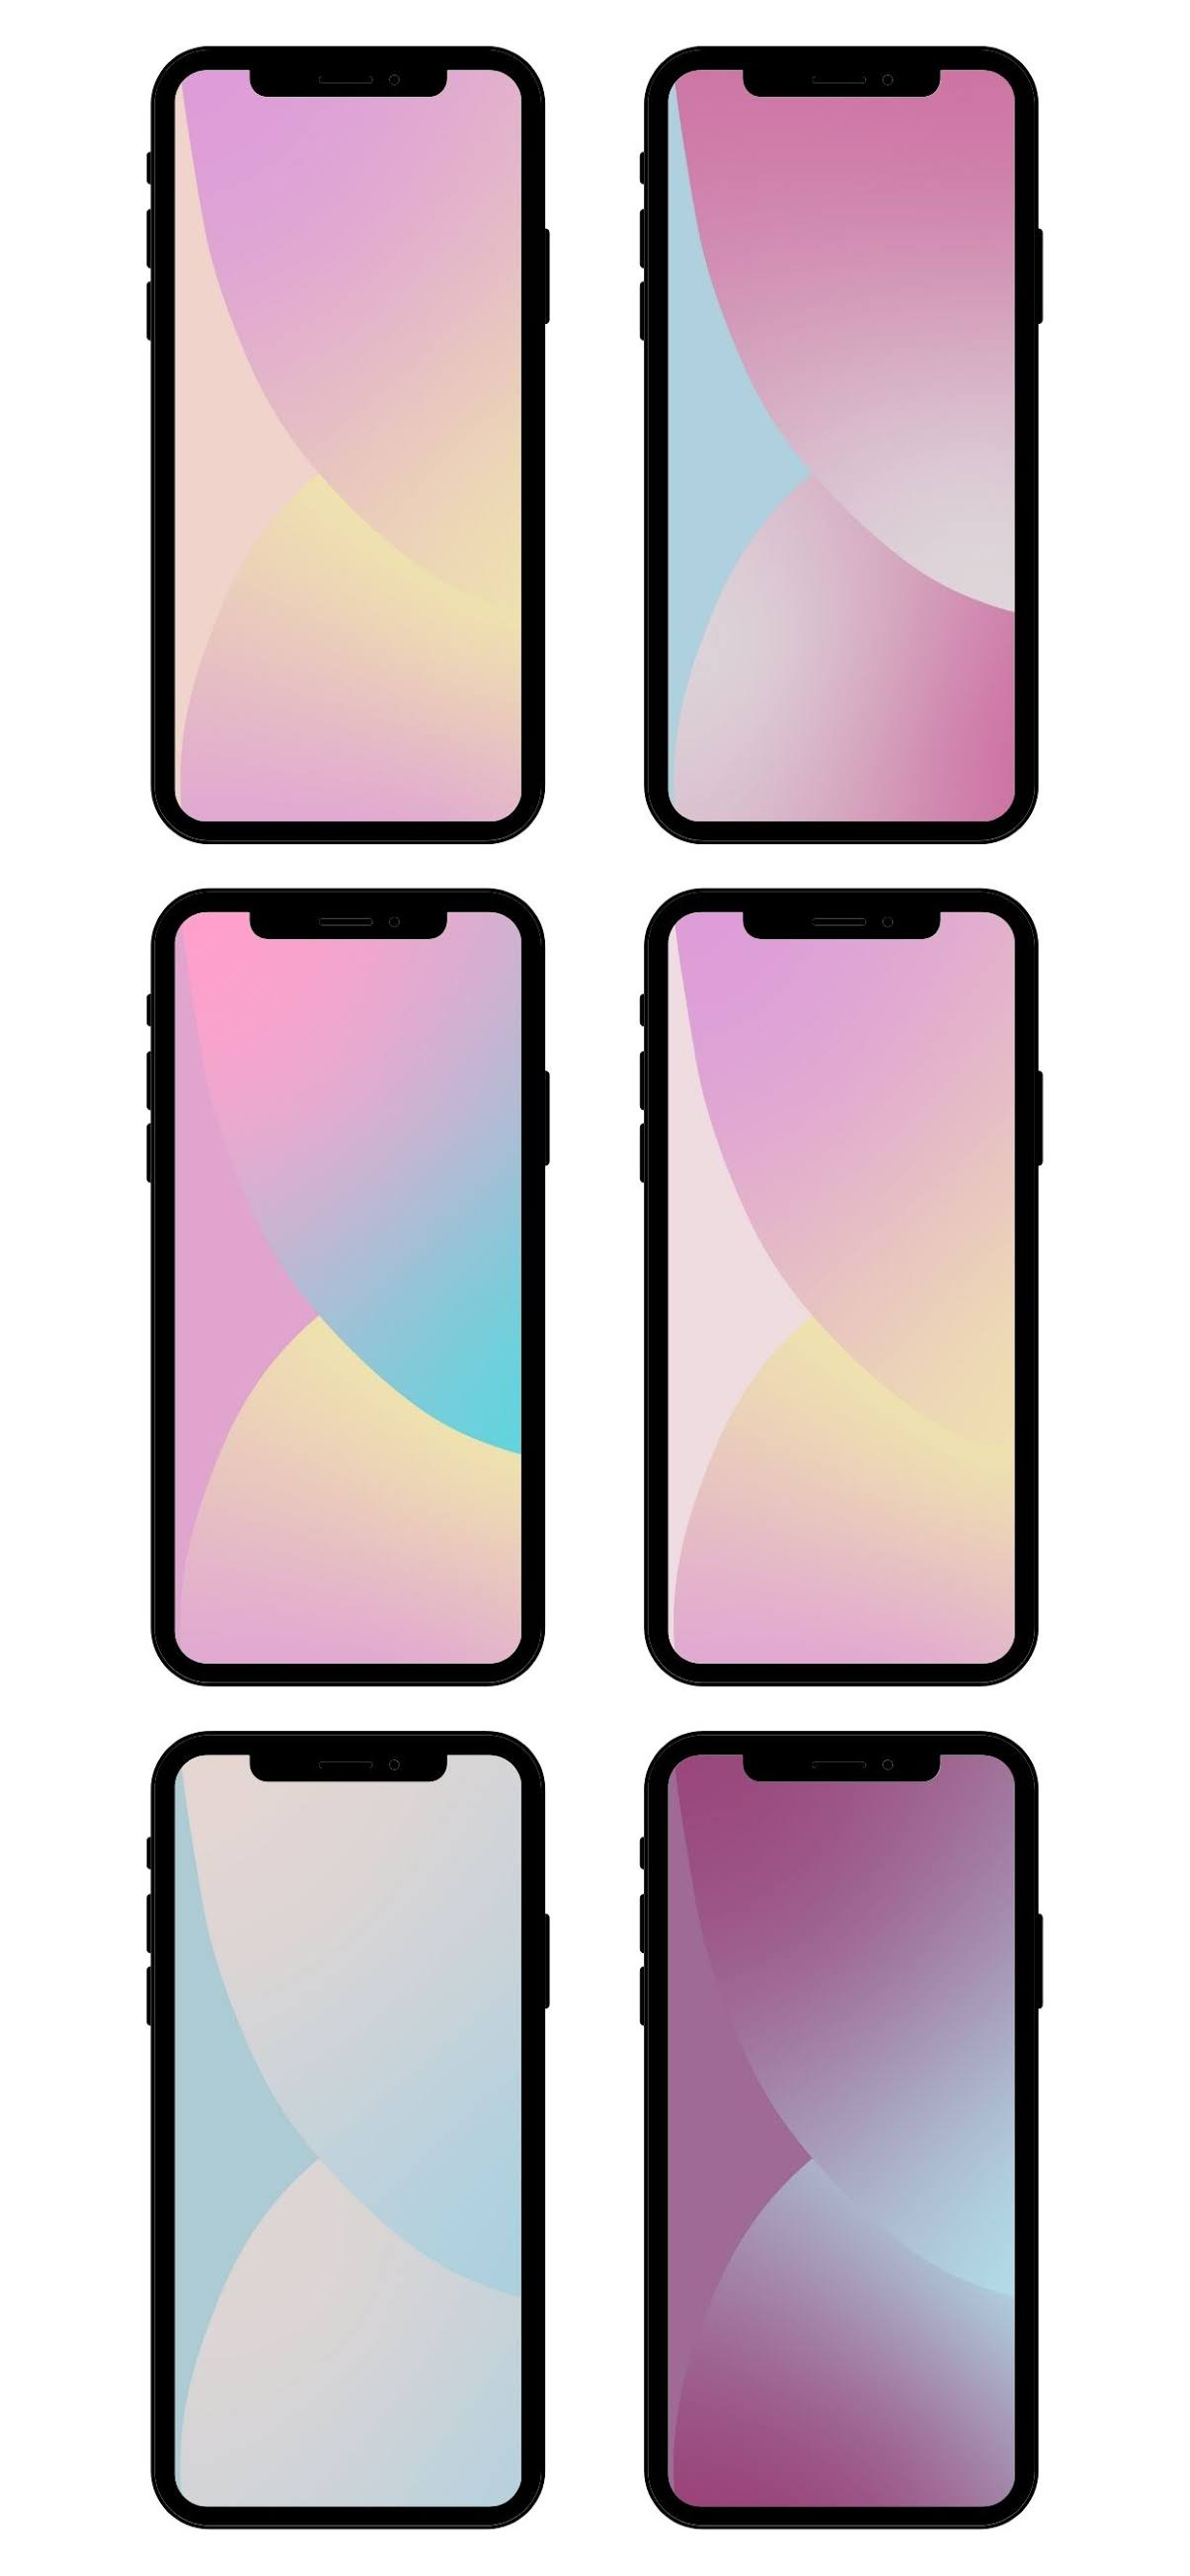 Iphone Ios 14 Aesthetic Pastel Wallpapers Wallpaperize Phone Wallpapers